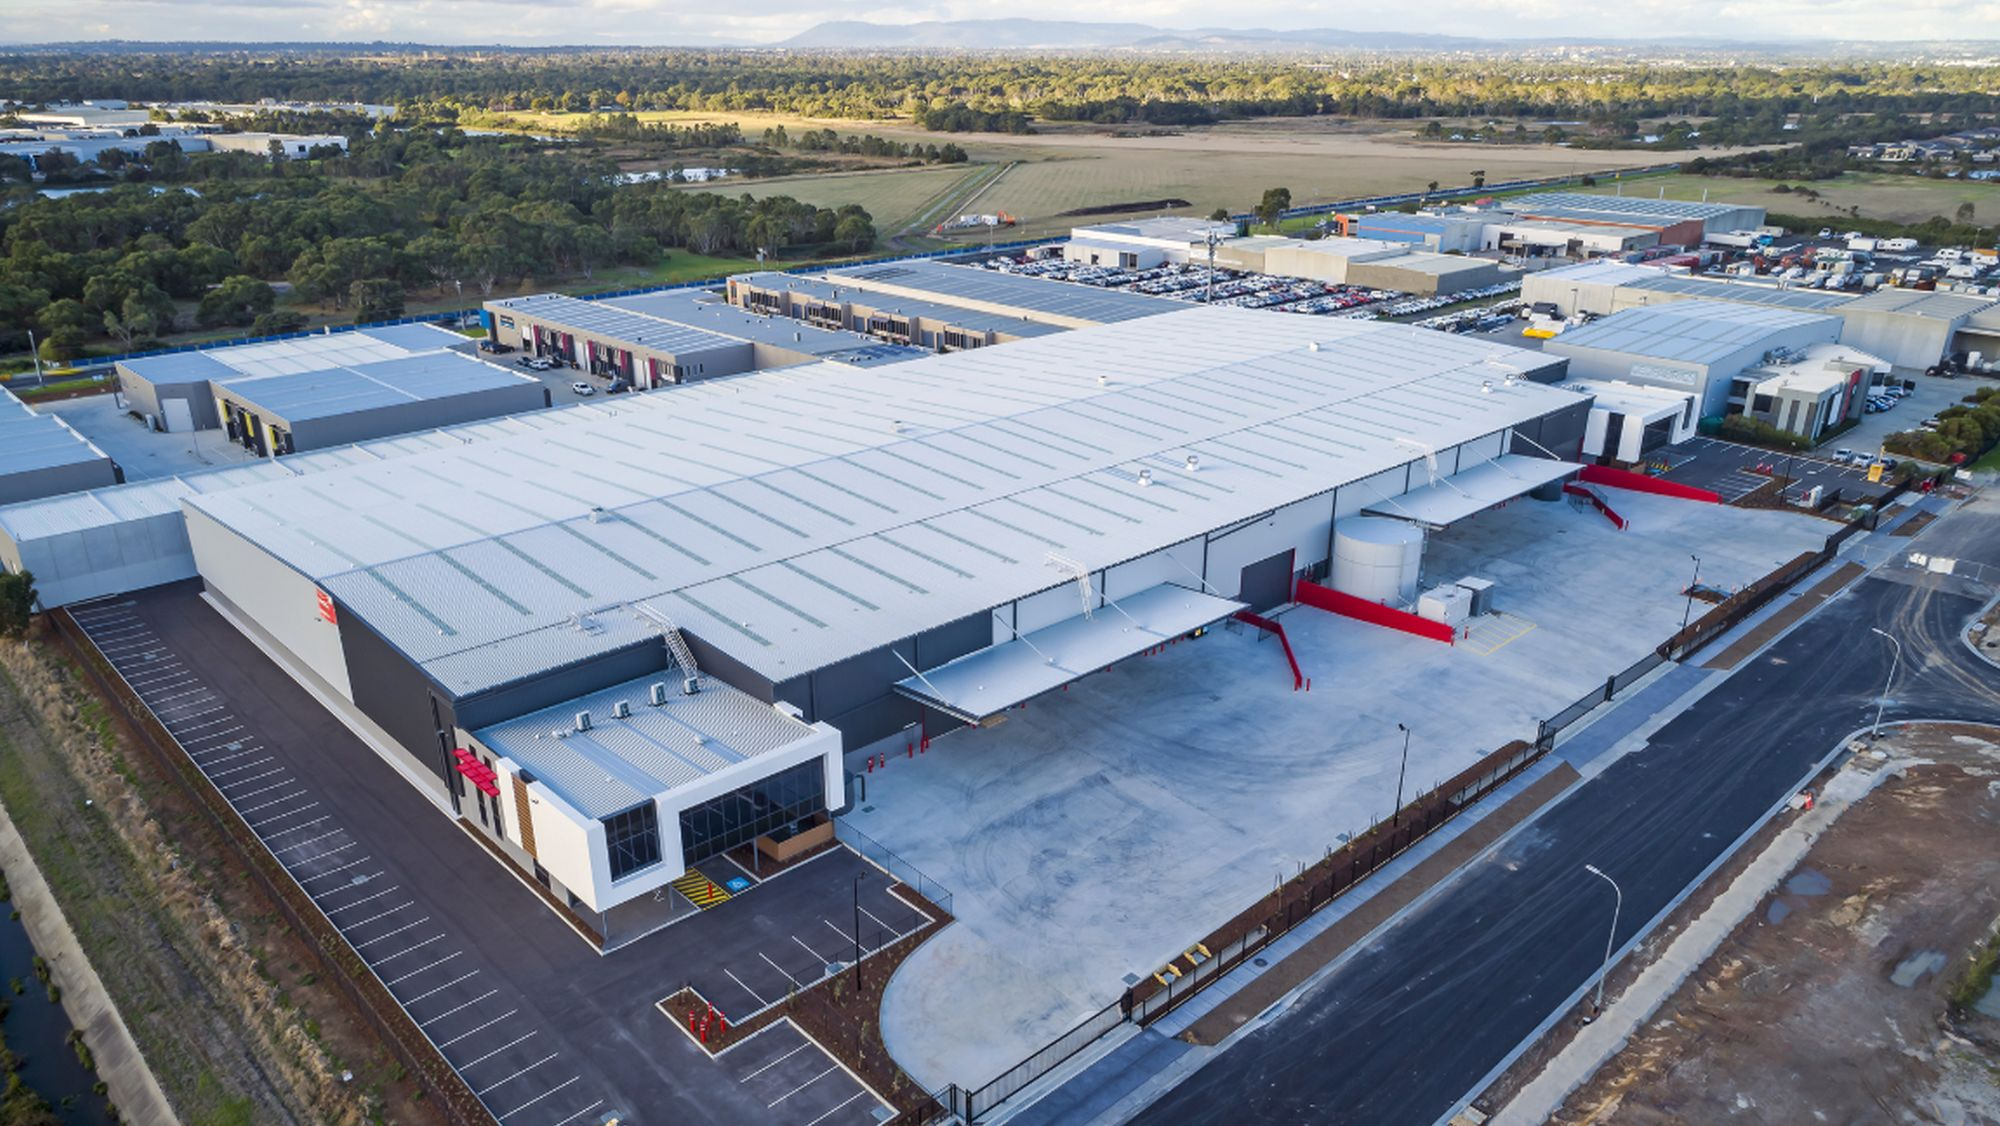 •	IVE Group, Braeside Industrial Estate, Victoria | Frasers Property Australia